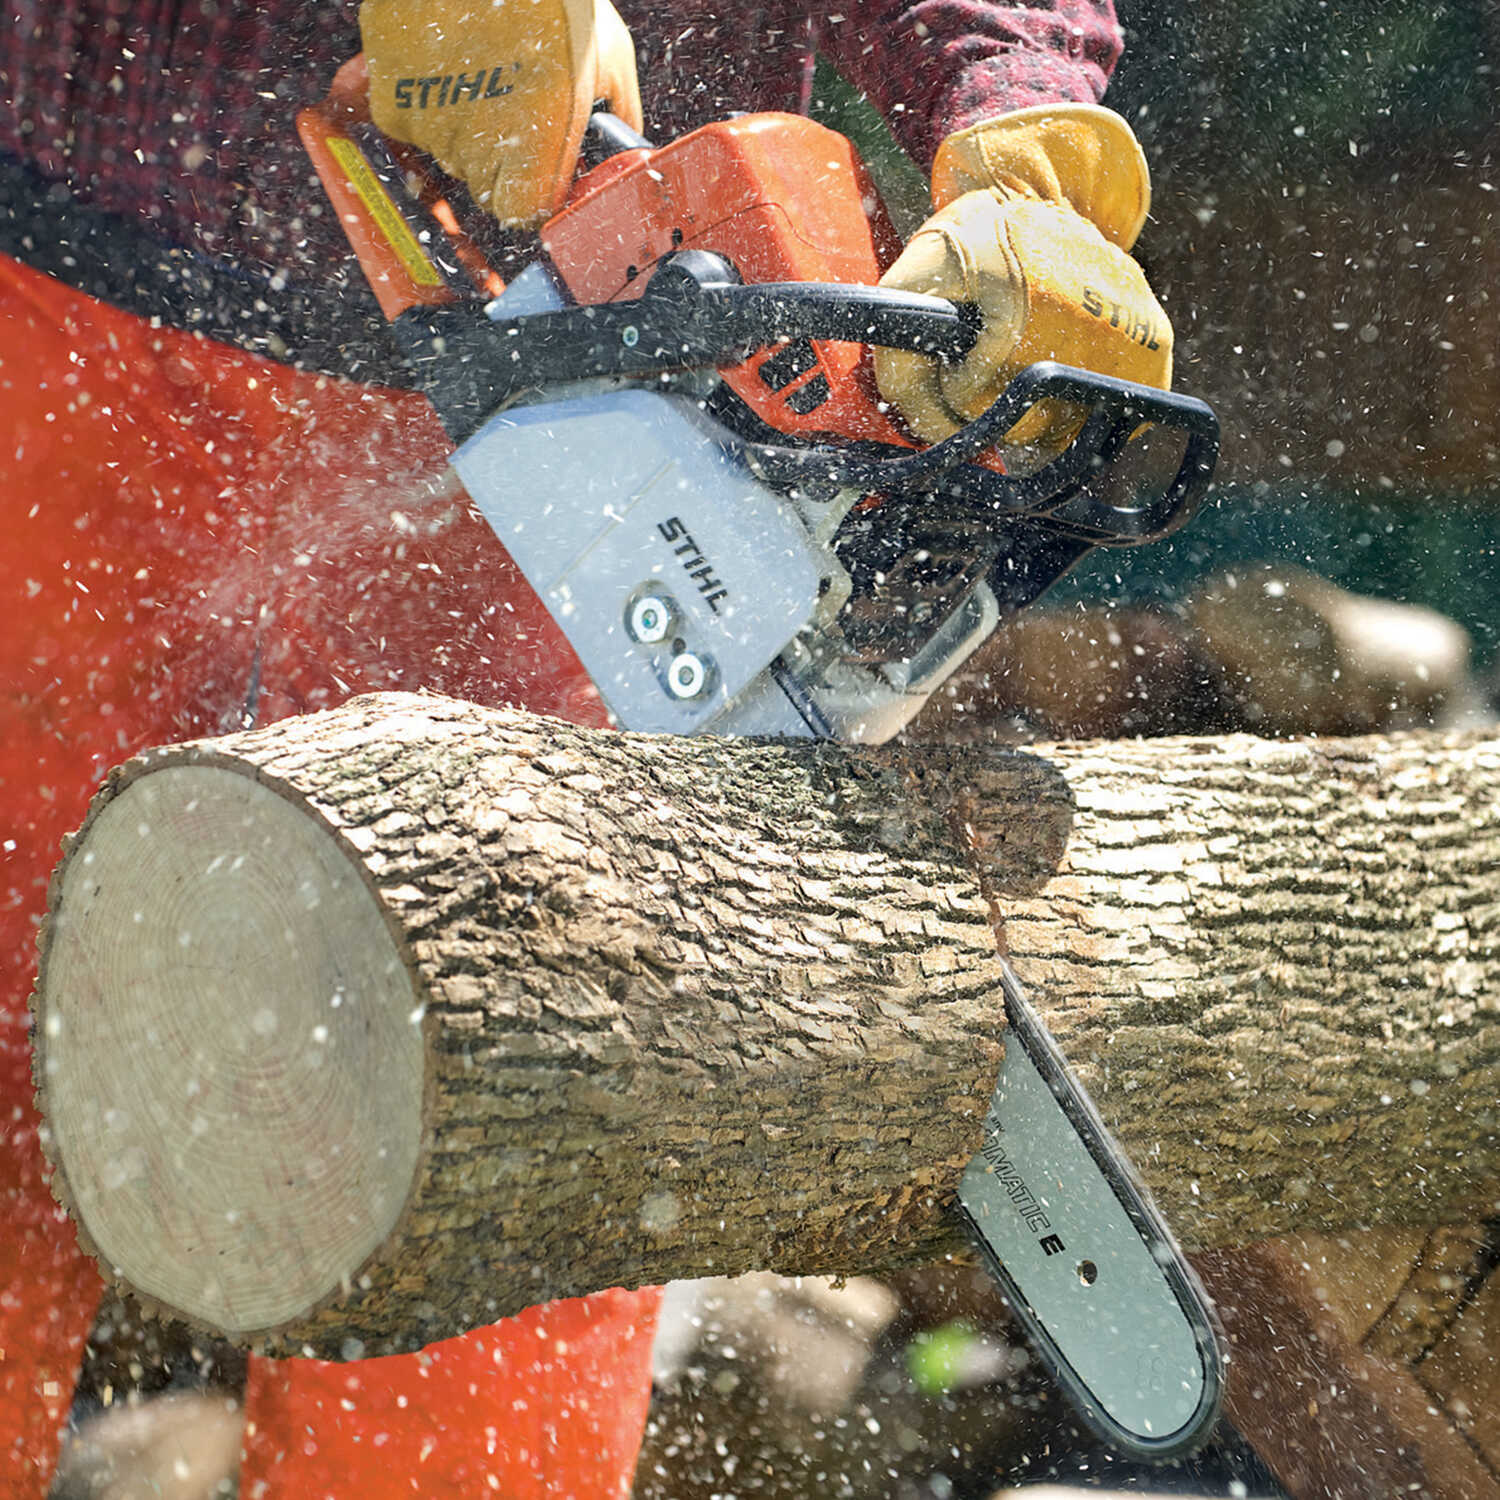 STIHL 18 in  Gas Chainsaw MS 250 - Ace Hardware